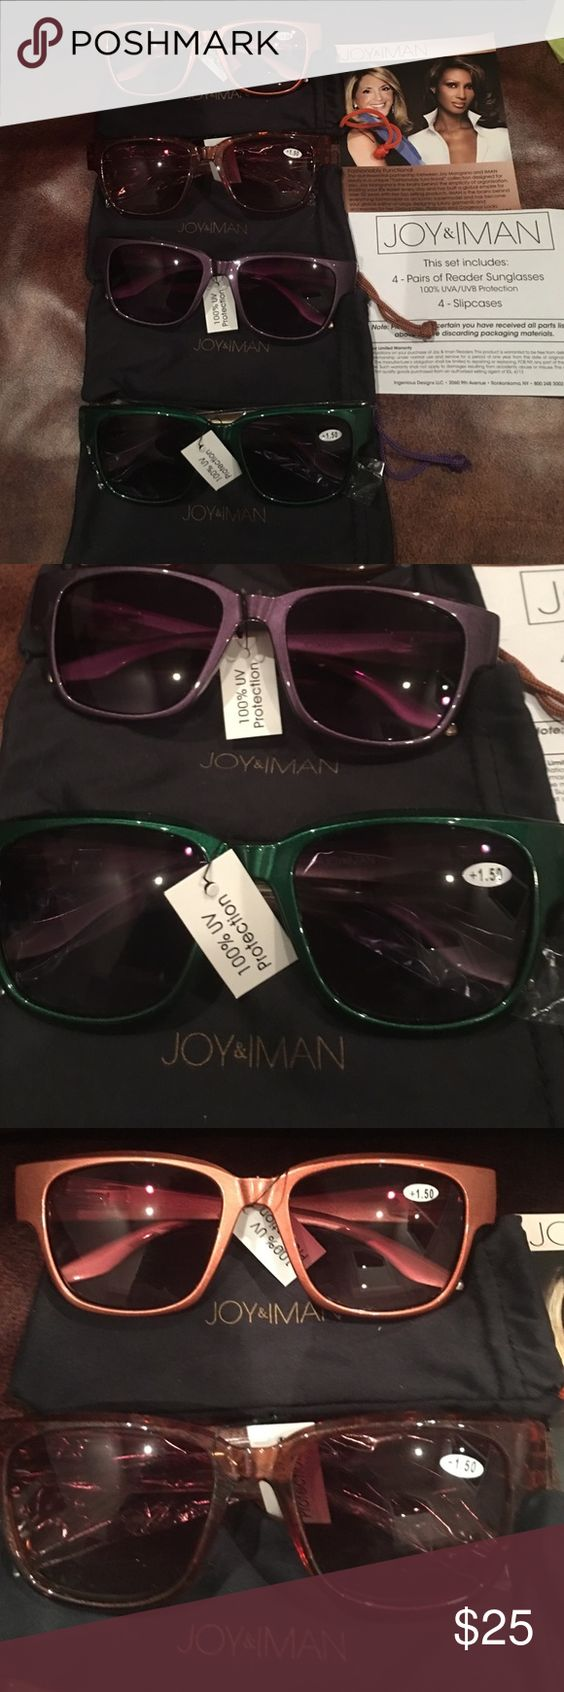 BRAND NEW 4 PIECE SET JOY& INMAN READER SUNGLASSES FULL SUNGLASS FRAME IS ALL 1.5 READER GLASSES. COMES WITH PURPLE, GREEN, ORANGE AND BROWN ENOUGH FOR ALL YOUR OUTFITS TO MATCH AT LEAST ONE PAIR. THEY ARE HELD IN A SLIP COVER WHICH CAN BE USED TO CLEAN THE GLASSWARE ALSO. THESE ARE VERY VERY NICE!! JOY & IMAN Other